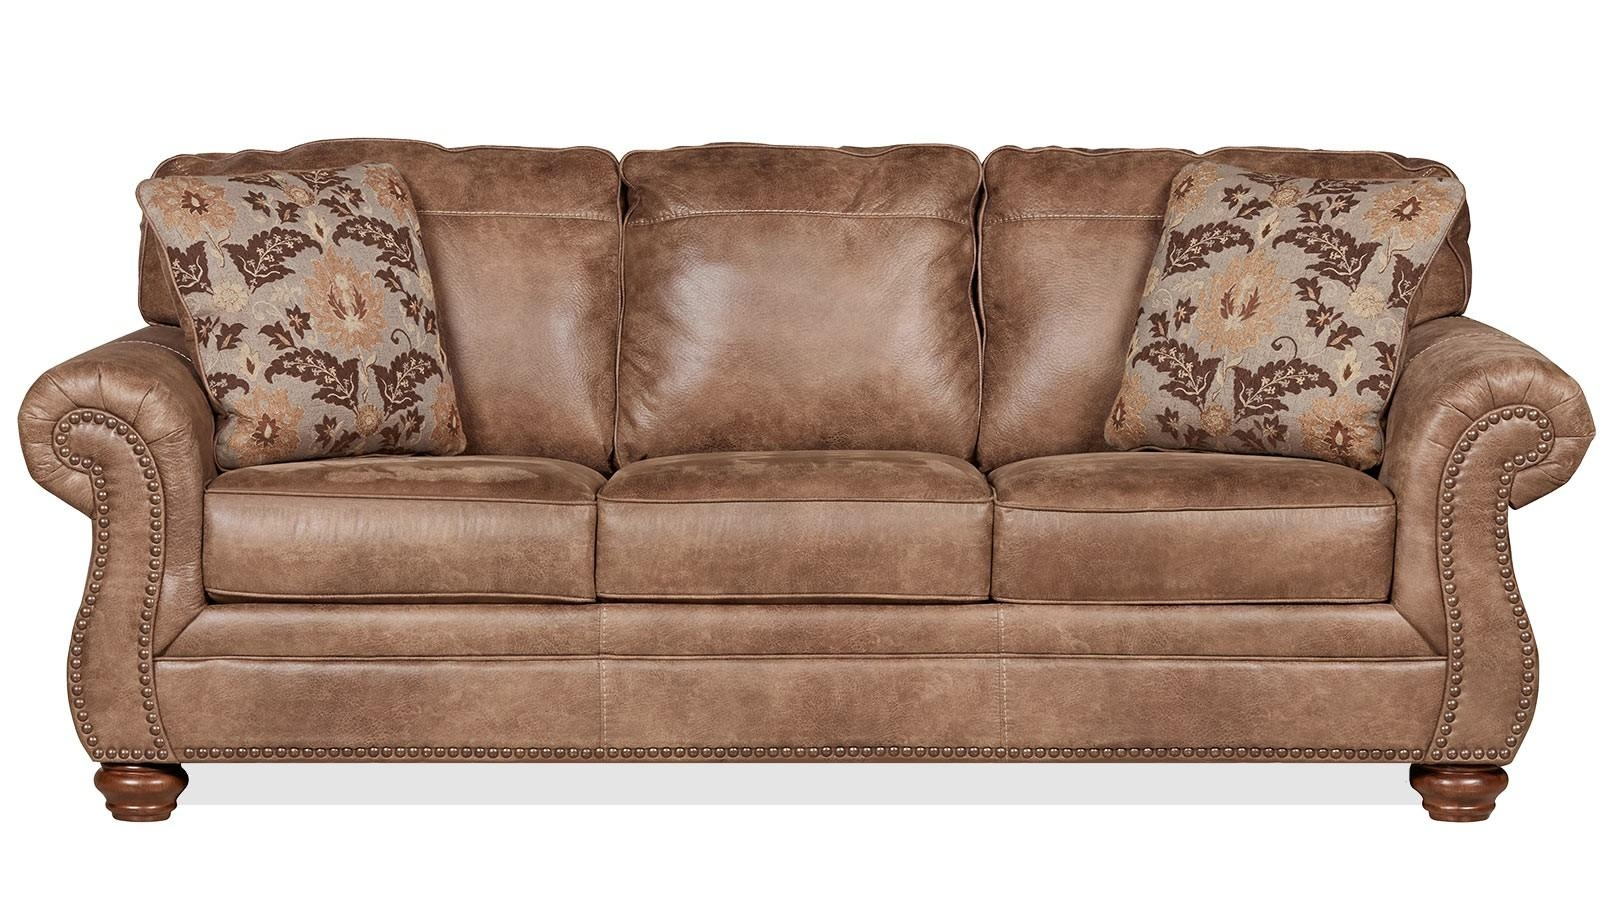 Hallettsville Earth Queen Sleeper Sofa | Gallery Regarding Sofas (Image 9 of 20)